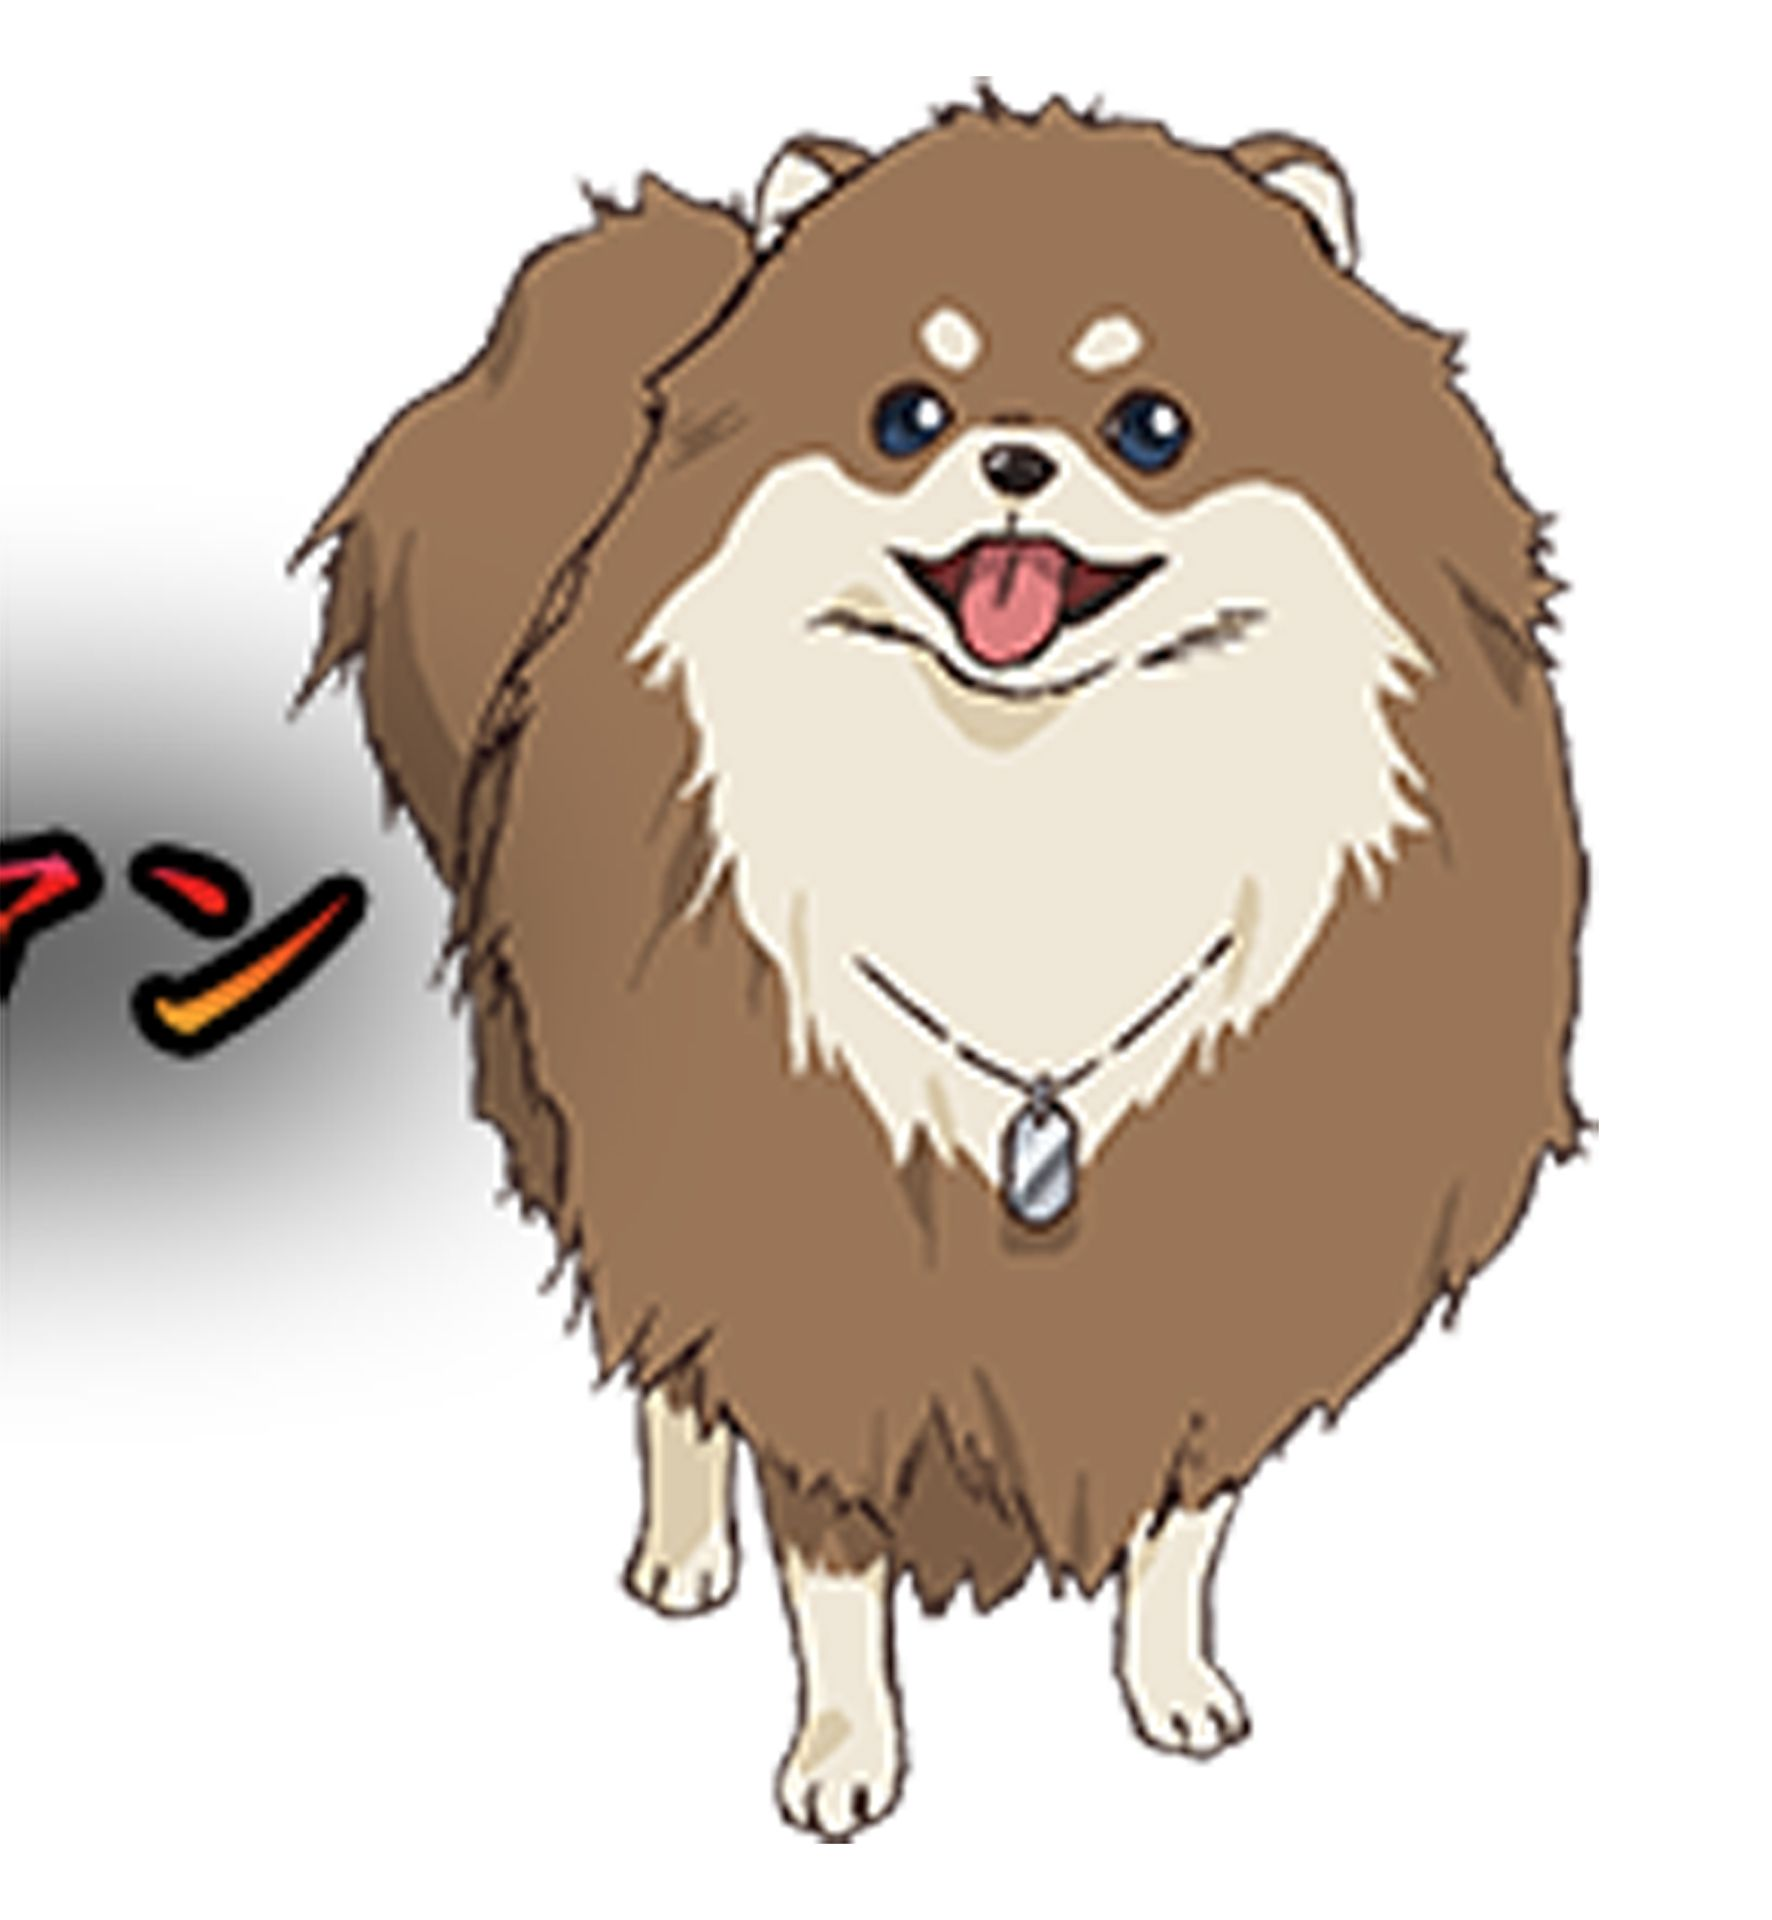 Wonderful Pomeranian Anime Adorable Dog - e20181193897dddff625c4e086512b0a  Pictures_68622  .jpg